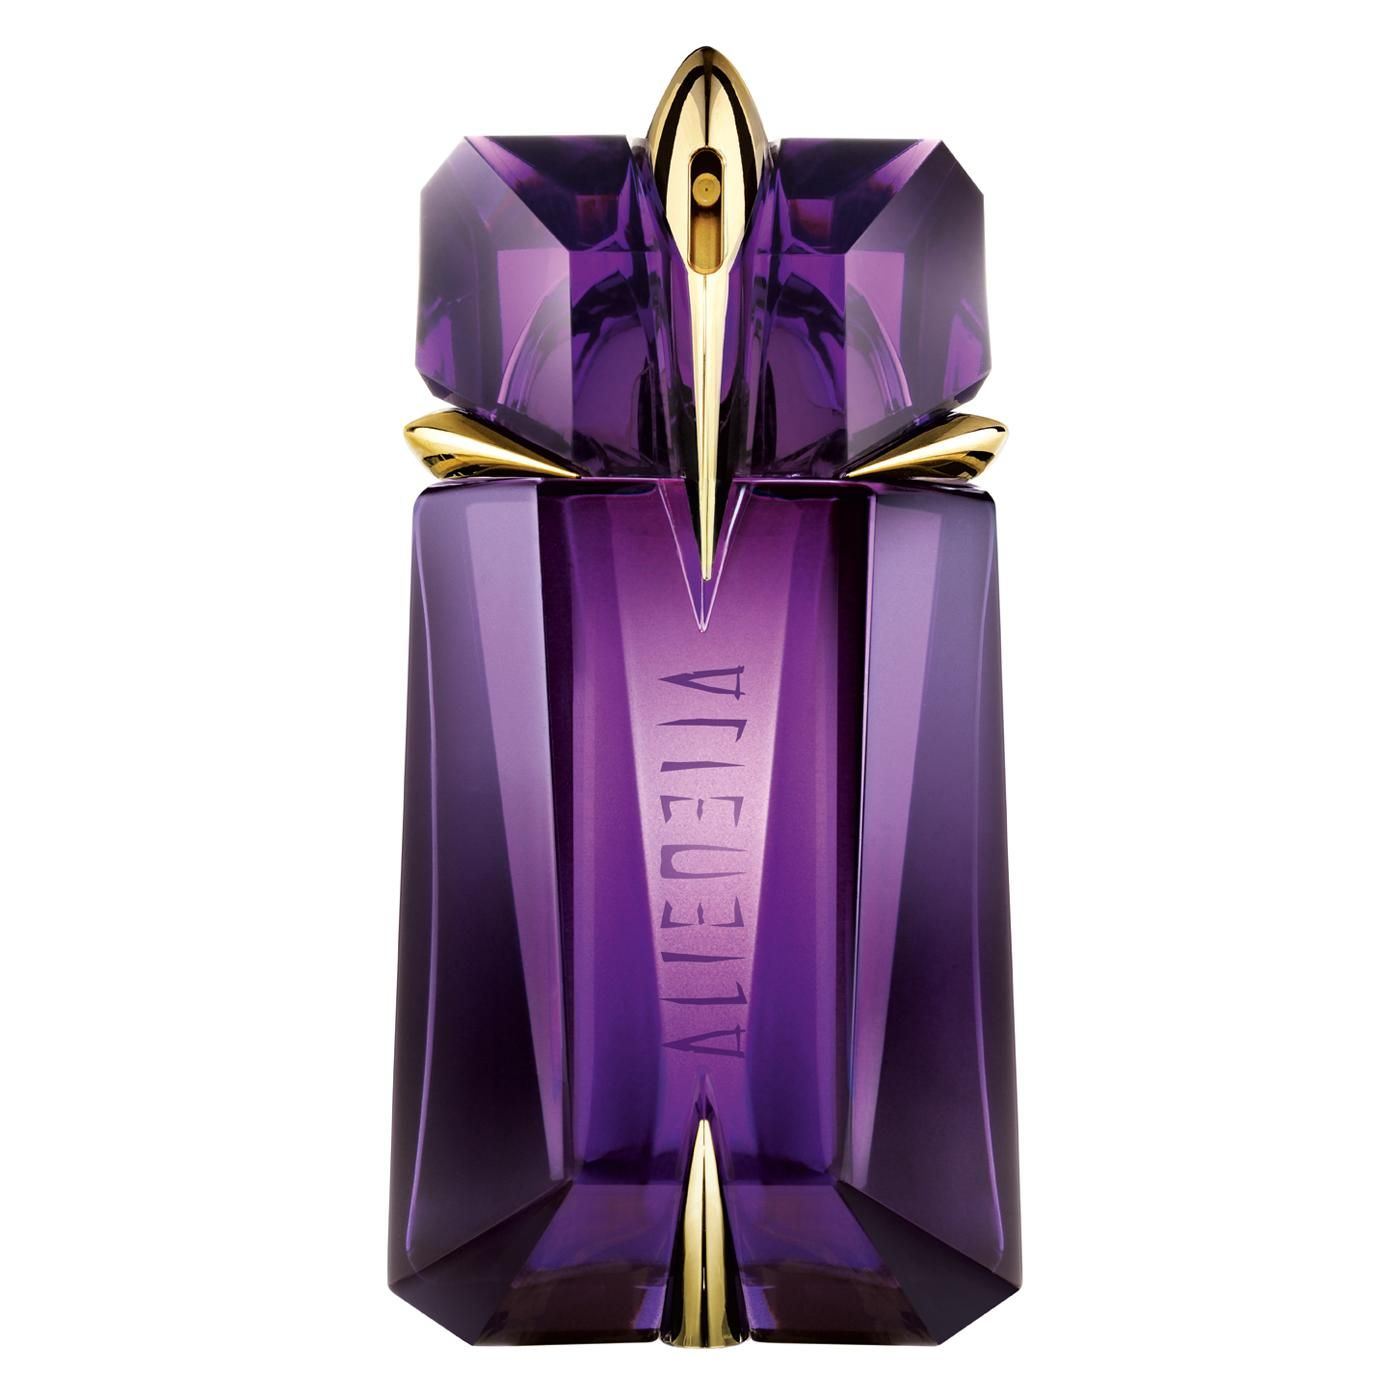 Thierry Mugler Alien Is My Signature Scent I Get Compliments On Absolute Feminine Hygiene Eternity 60 Ml This Every Time Wear It